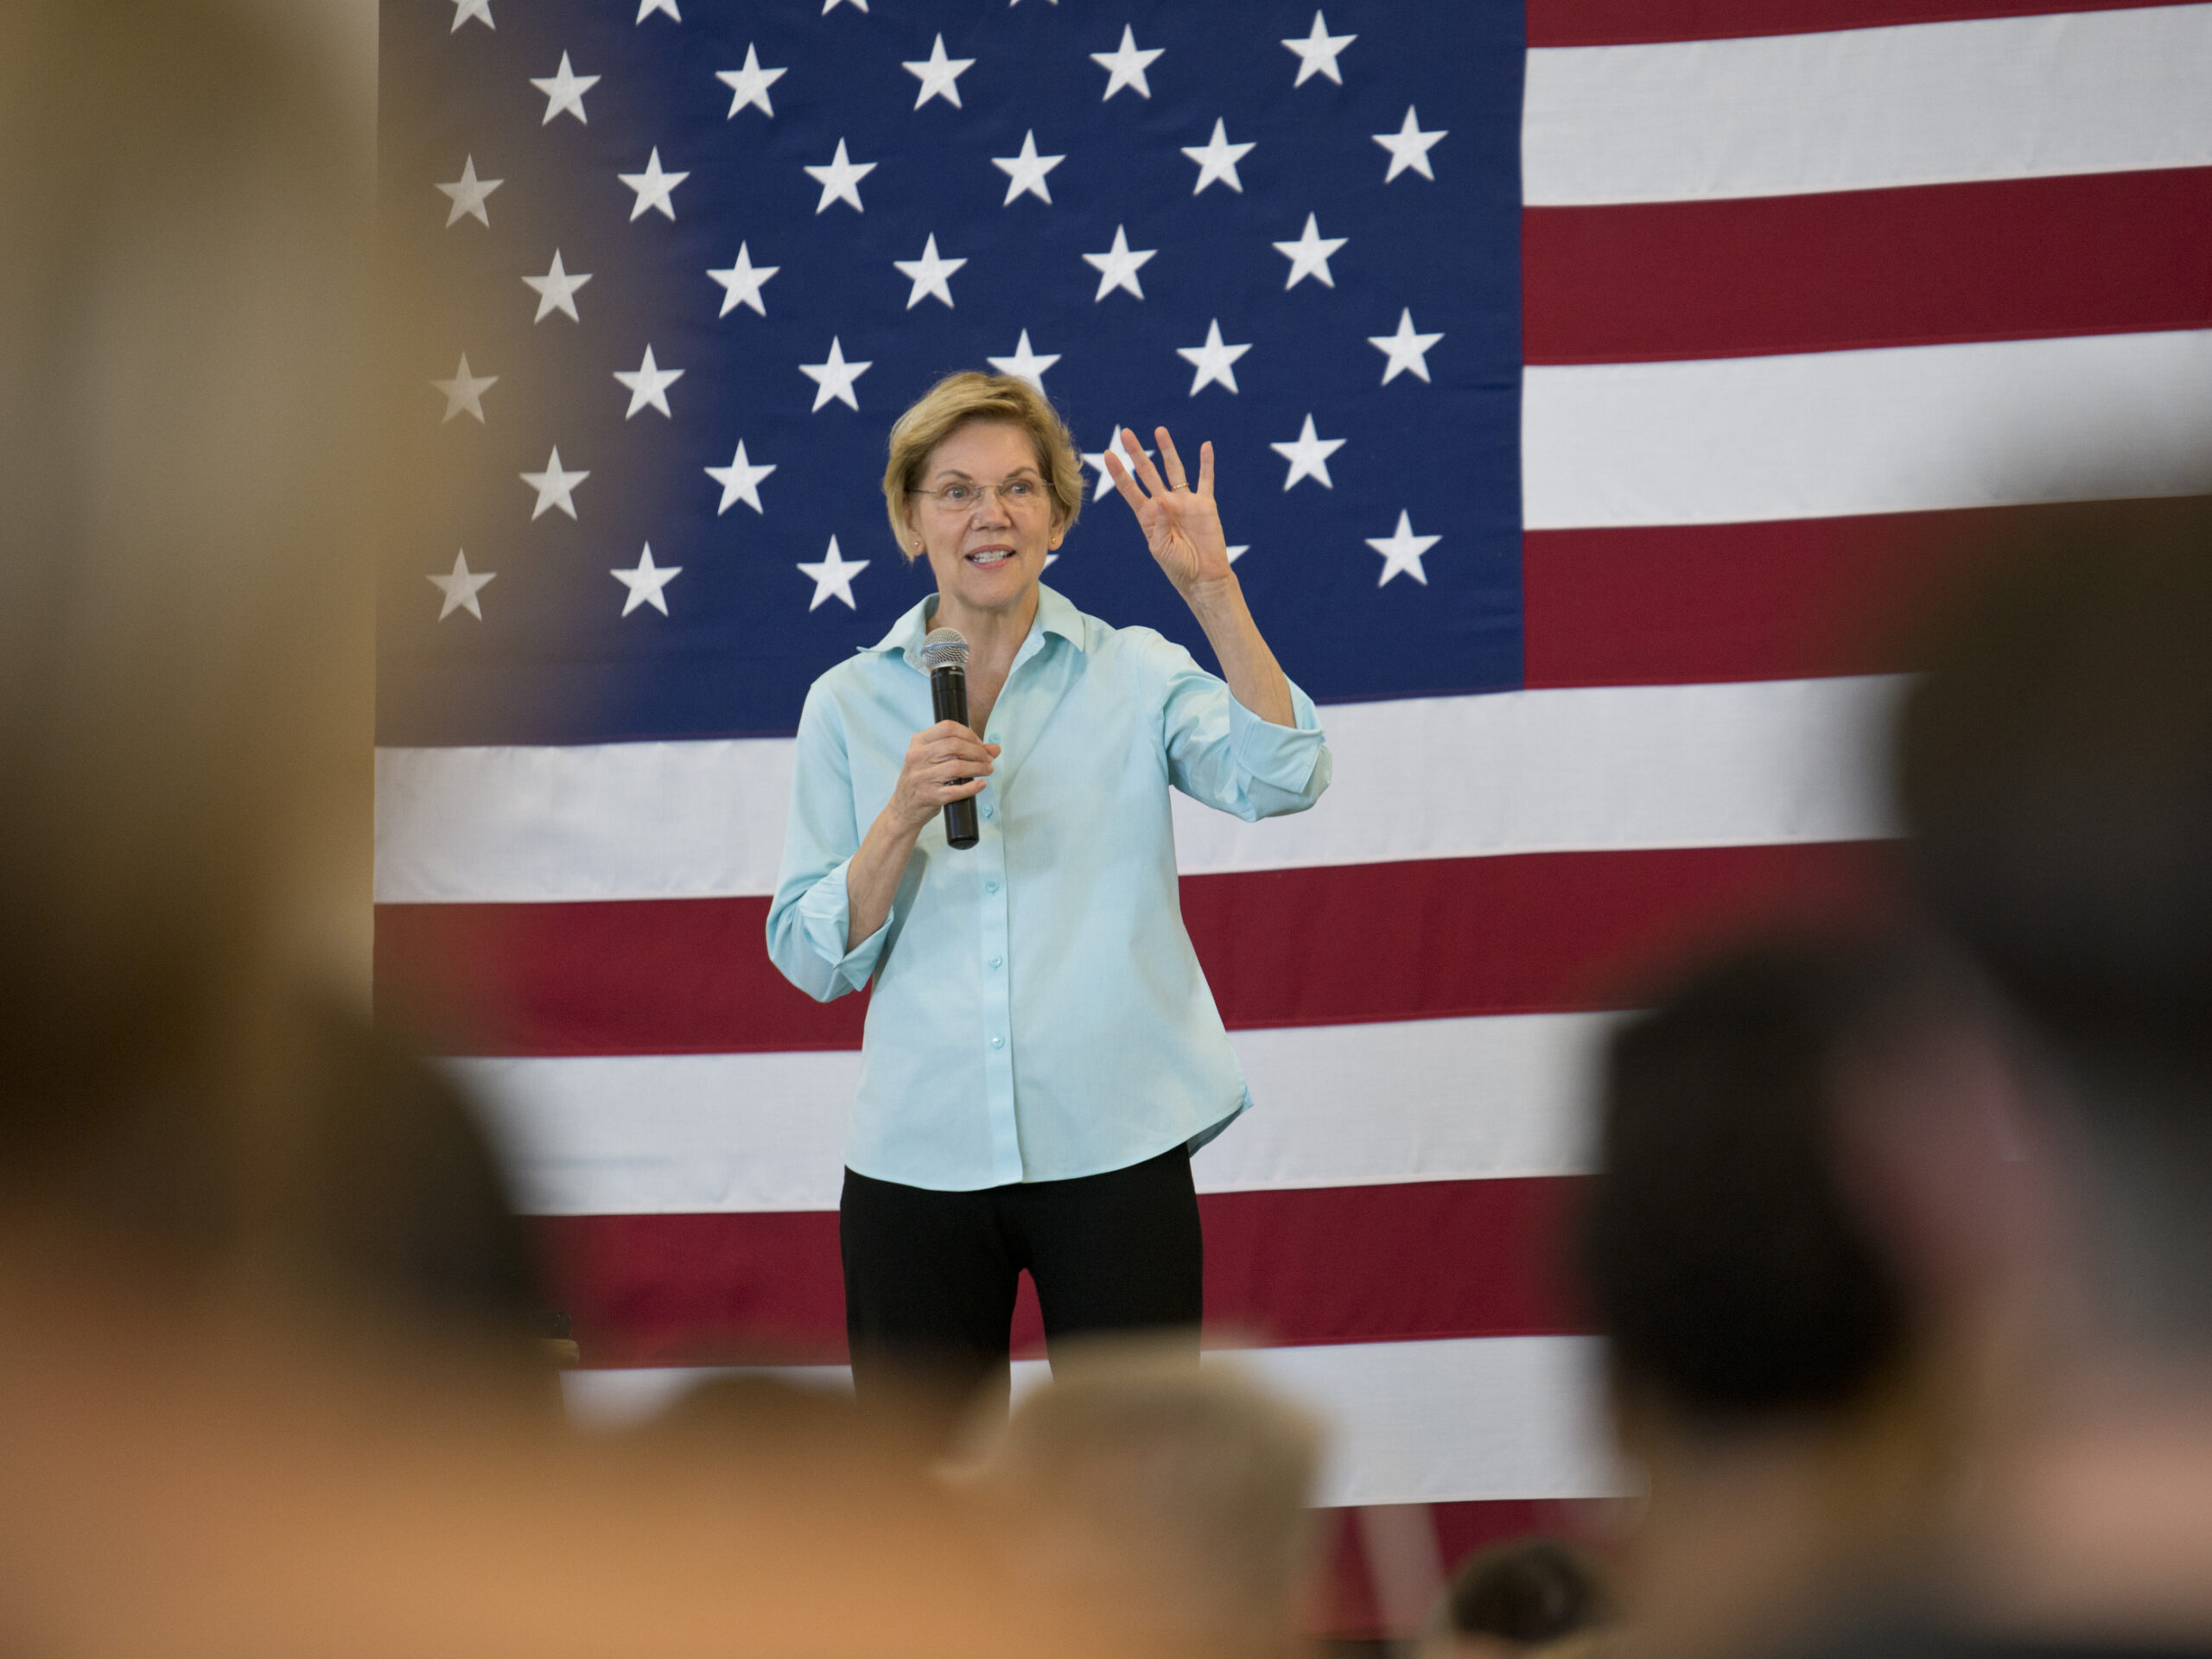 Massachusetts Senator Elizabeth Warren speaking to a crowd while standing in front of an American flag